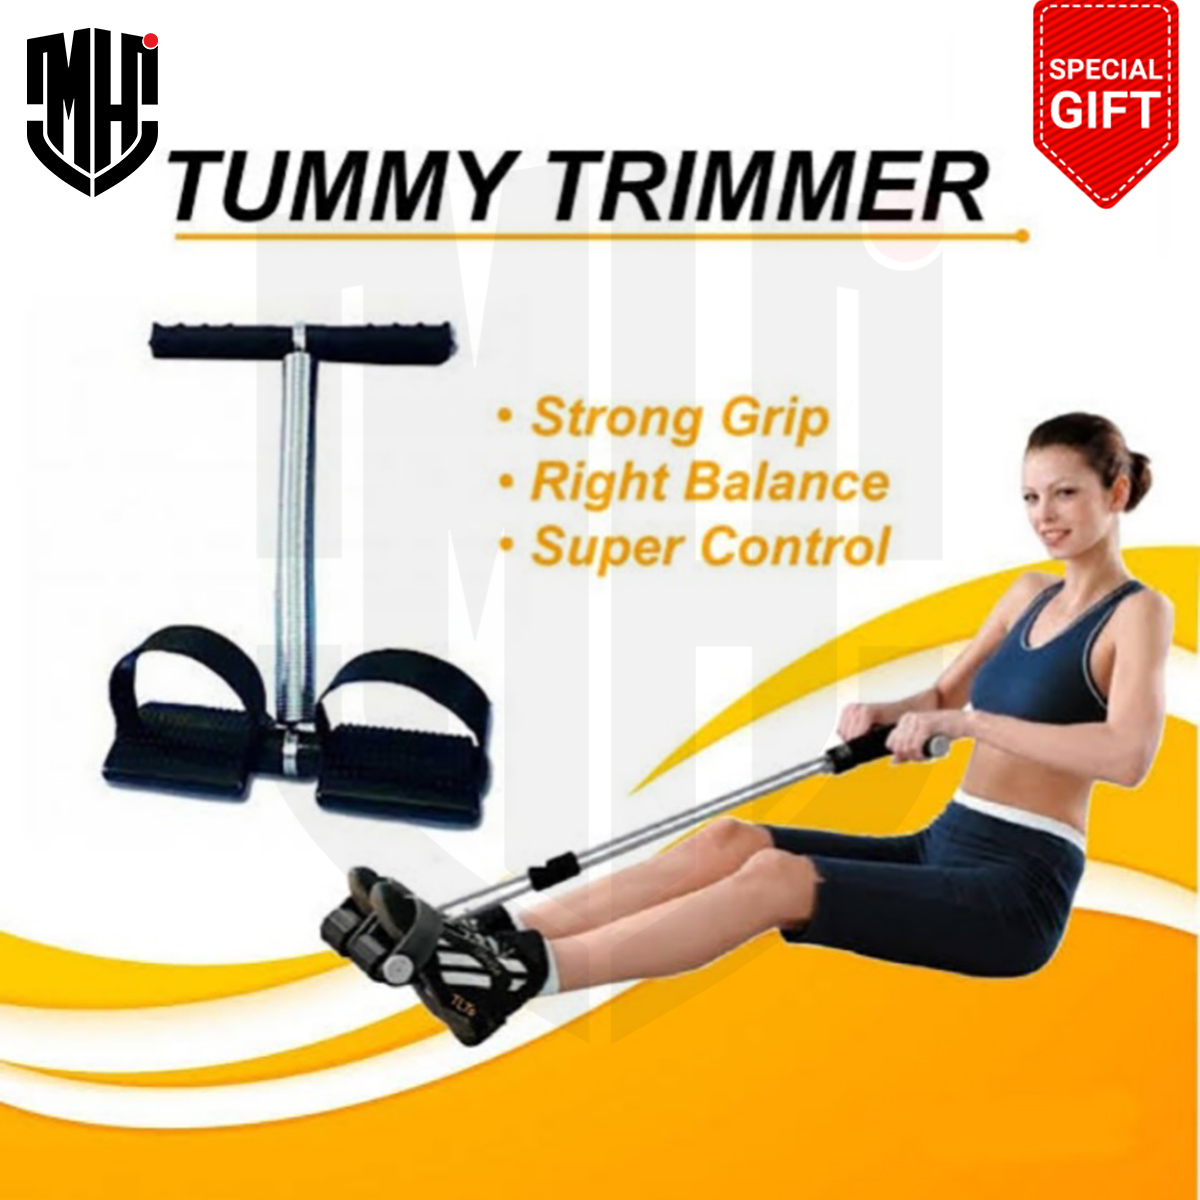 MHI Tummy Trimmer Single & Double Spring High Quality- Body Weight Loss Exercise Machine - Home Workout Gym for Men & Women - Tummy Trimmer For Girls - Tummy Trimmer For Women- Tumy Trimer - Tummy Trimmer For Men - Tumy Slimmer